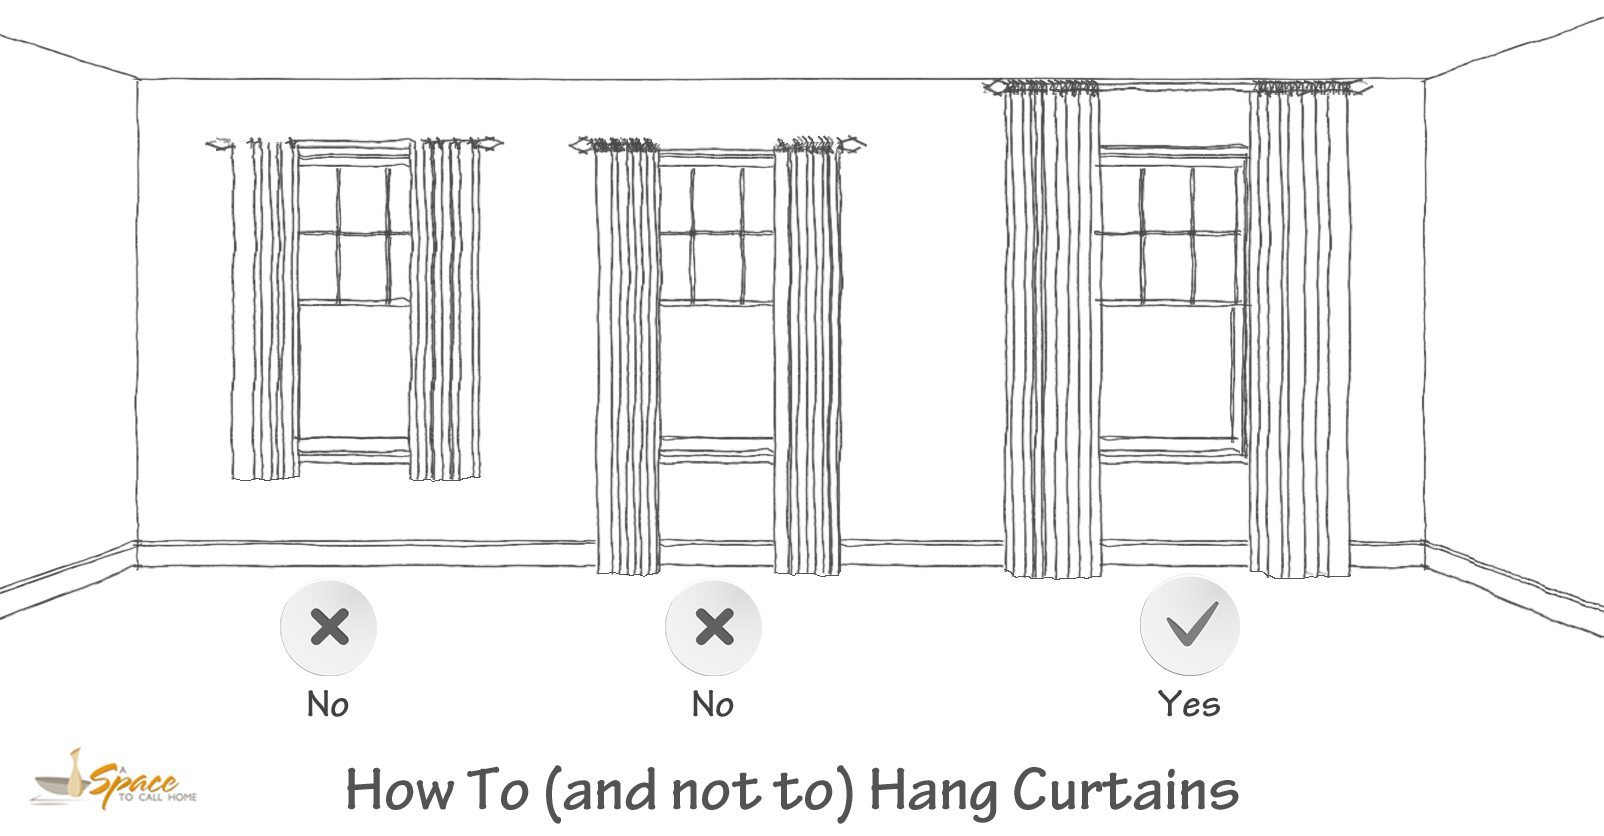 design tips & tricks - #4 how to hang curtains - a space to call home